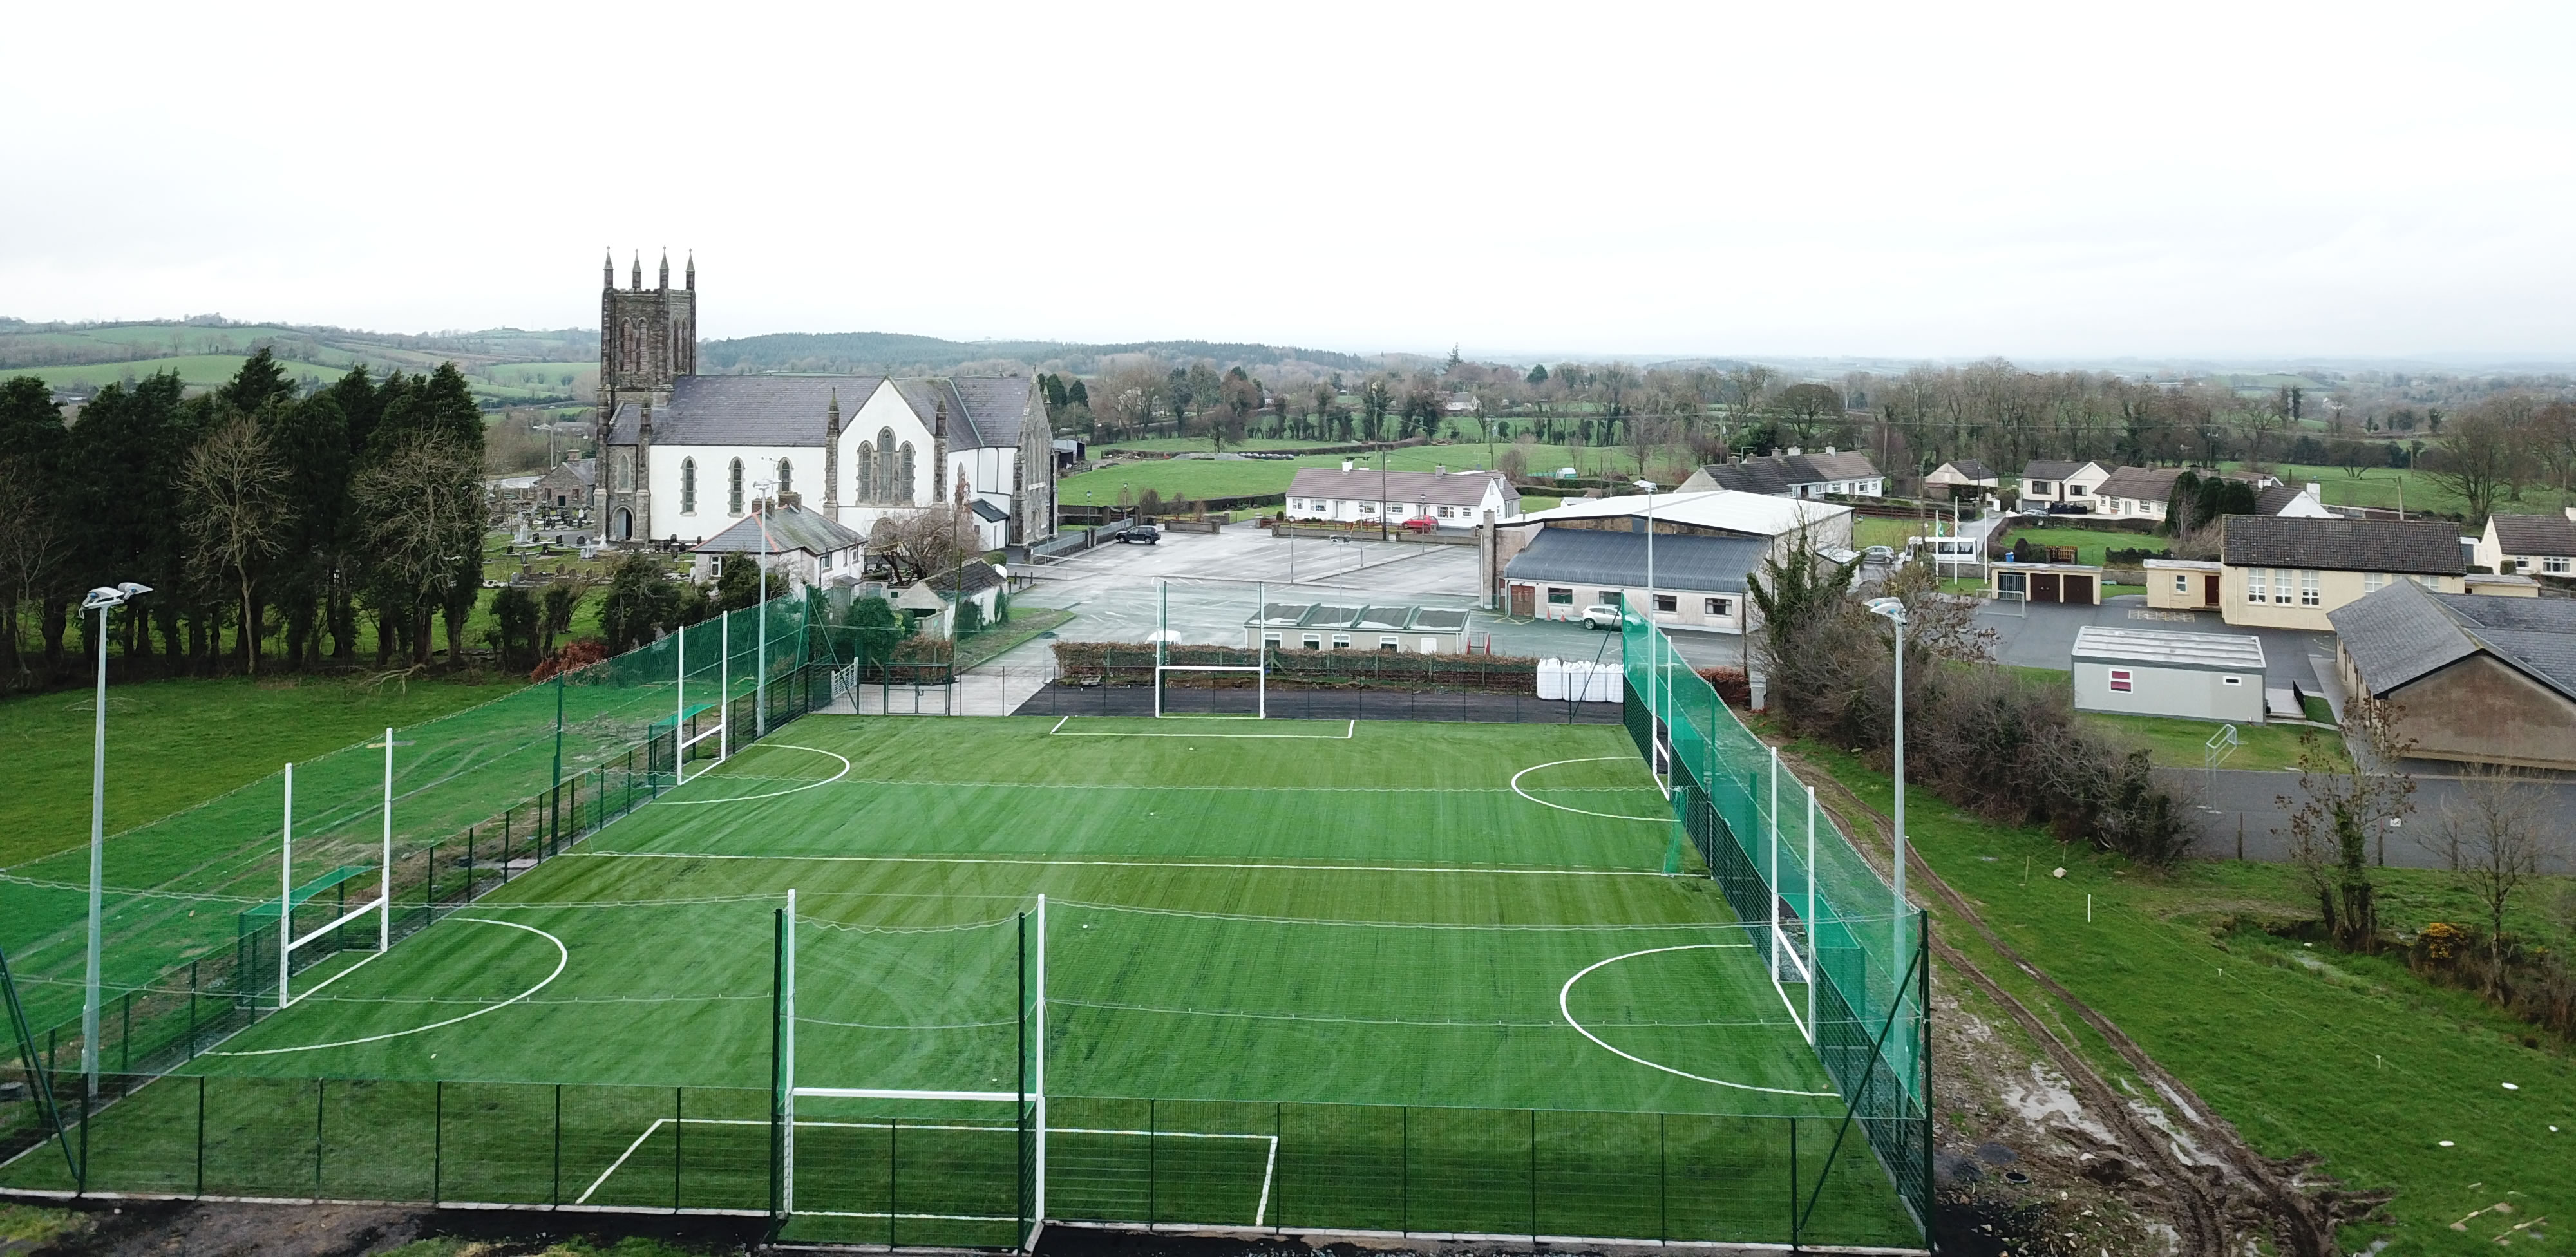 Artificial grass pitch development for Clontibret Development Association